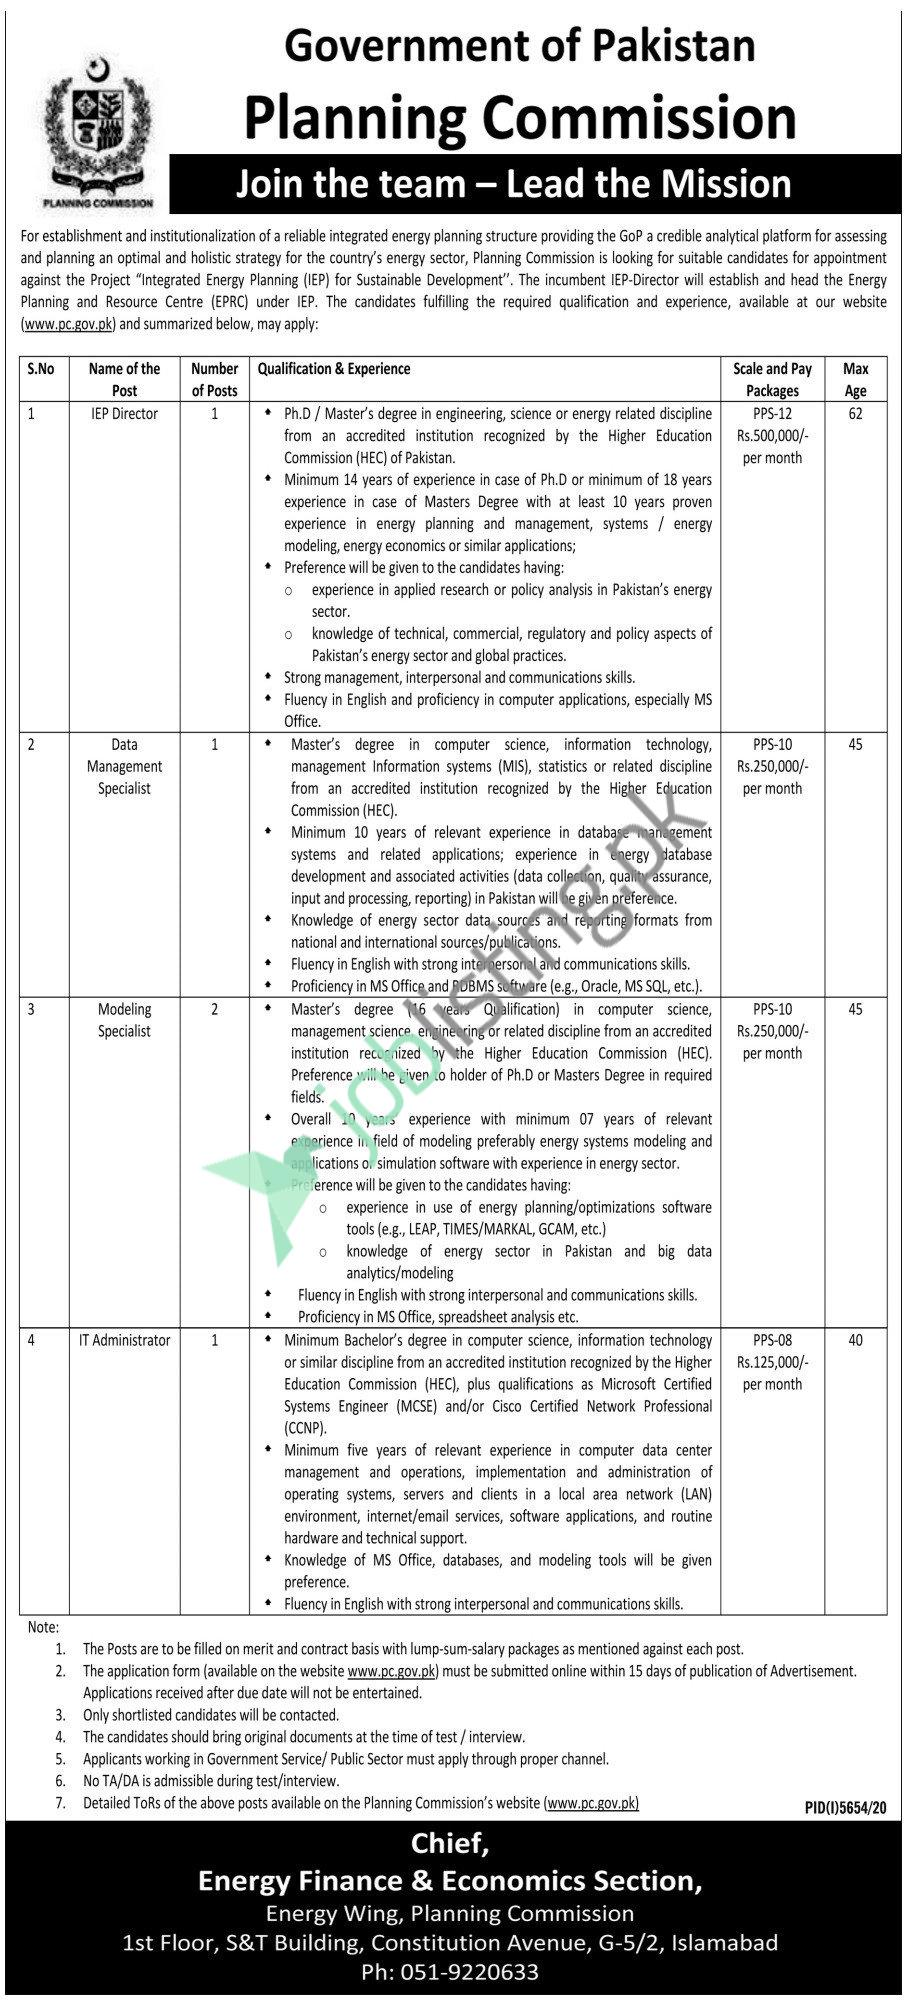 Planning Commission of Pakistan Jobs 2021 Government of Pakistan Advertisement